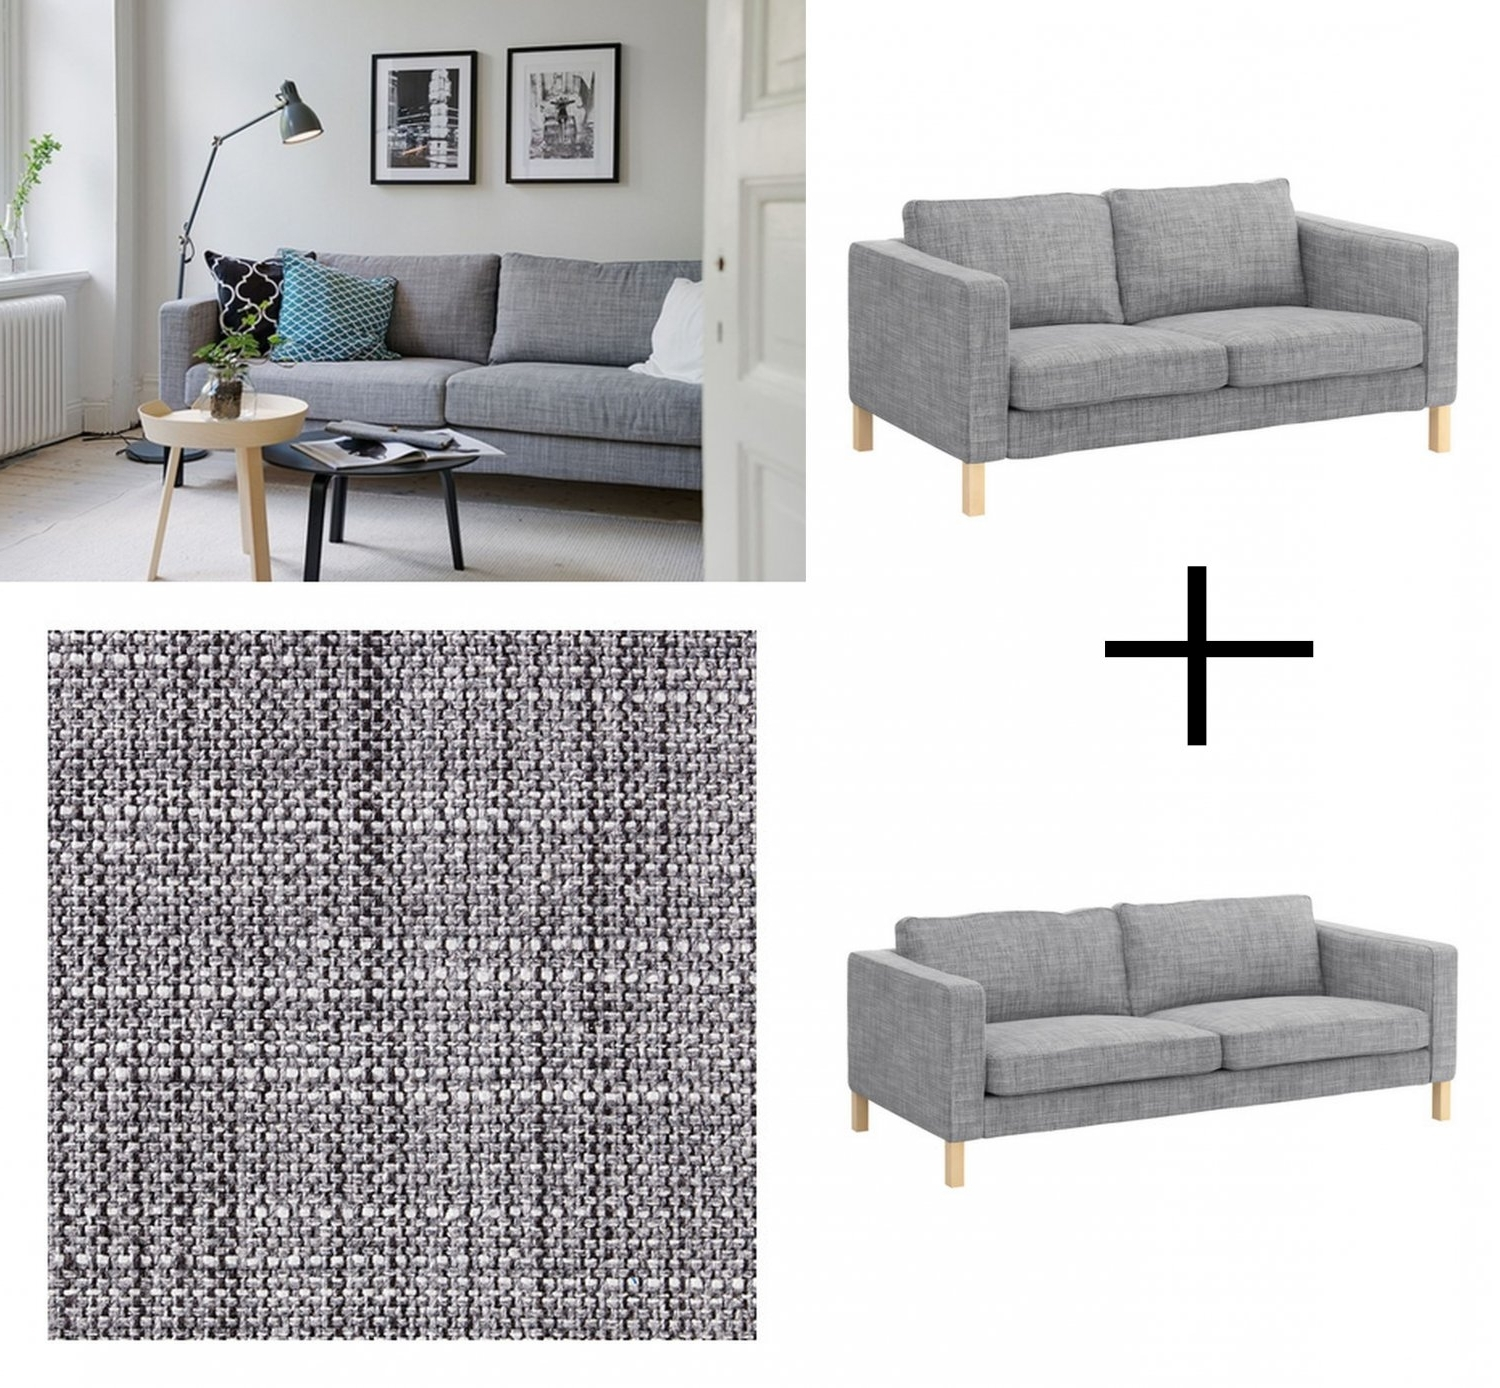 Fashionable Karlstad Sofa And Loveseat Slipcover Cover Isunda Gray Grey Linen With Regard To Karlstad Chaise Covers (View 5 of 15)